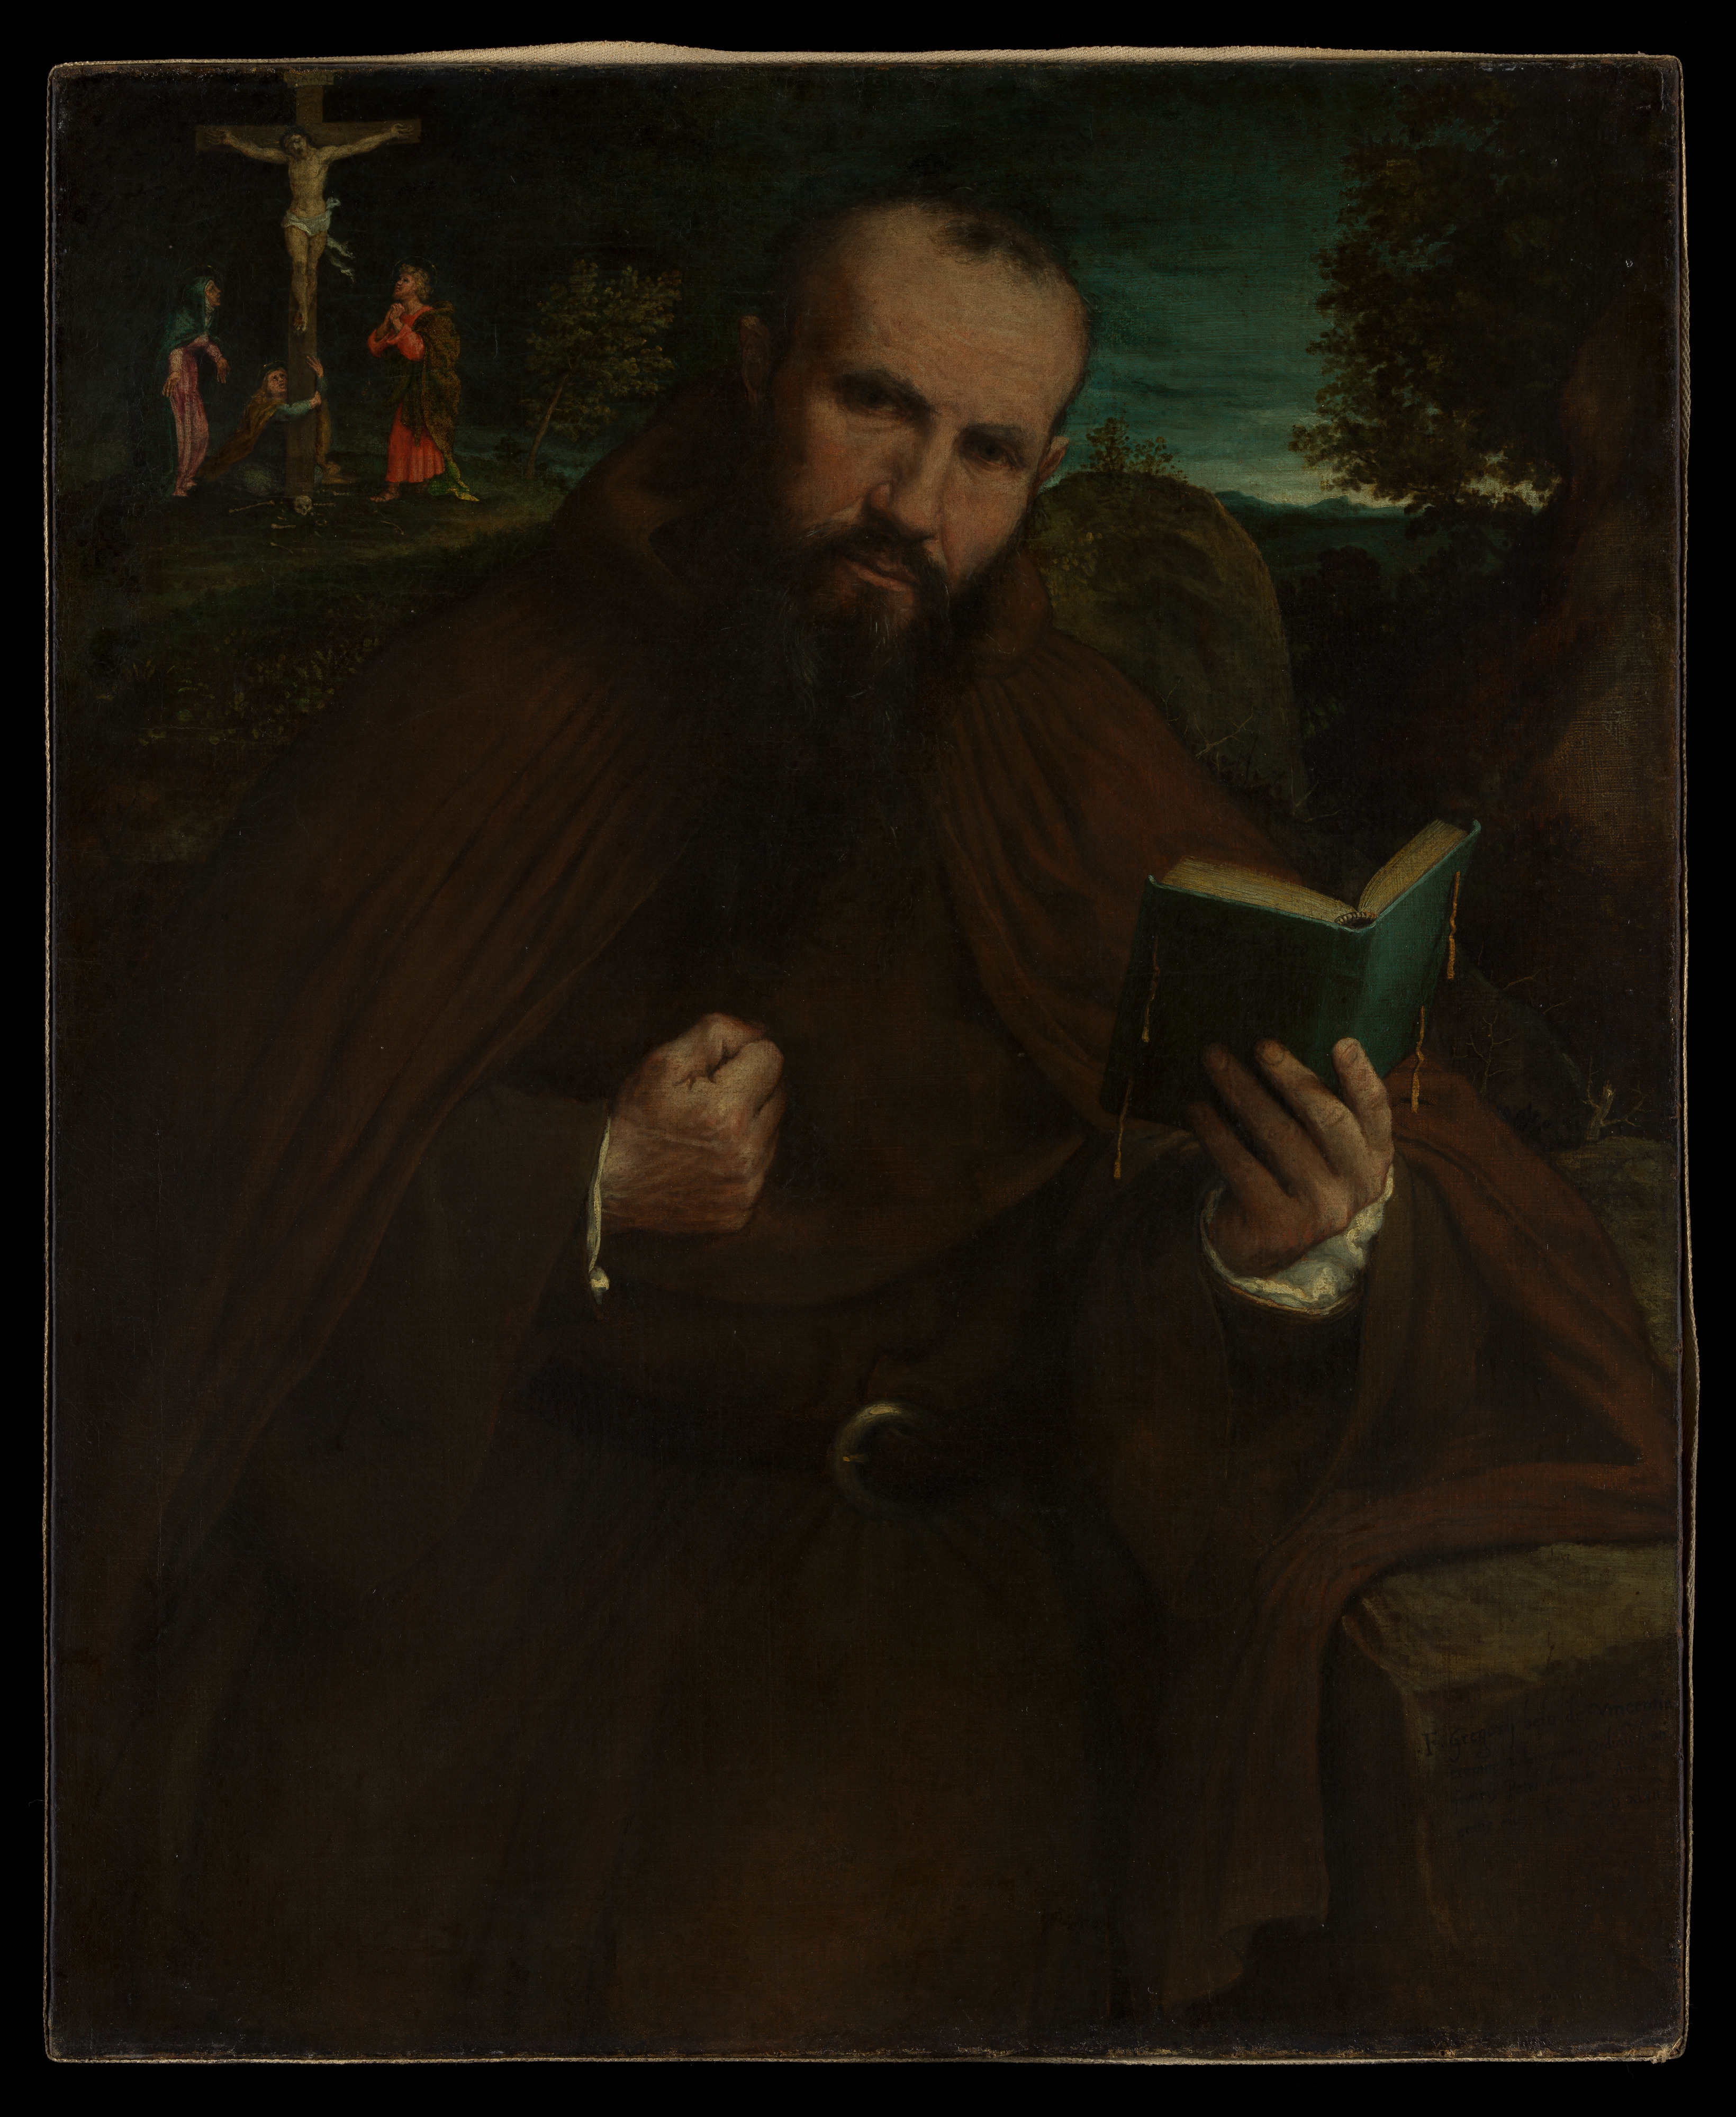 Pittori San Marco Vicenza Lorenzo Lotto Brother Gregorio Belo Of Vicenza The Met